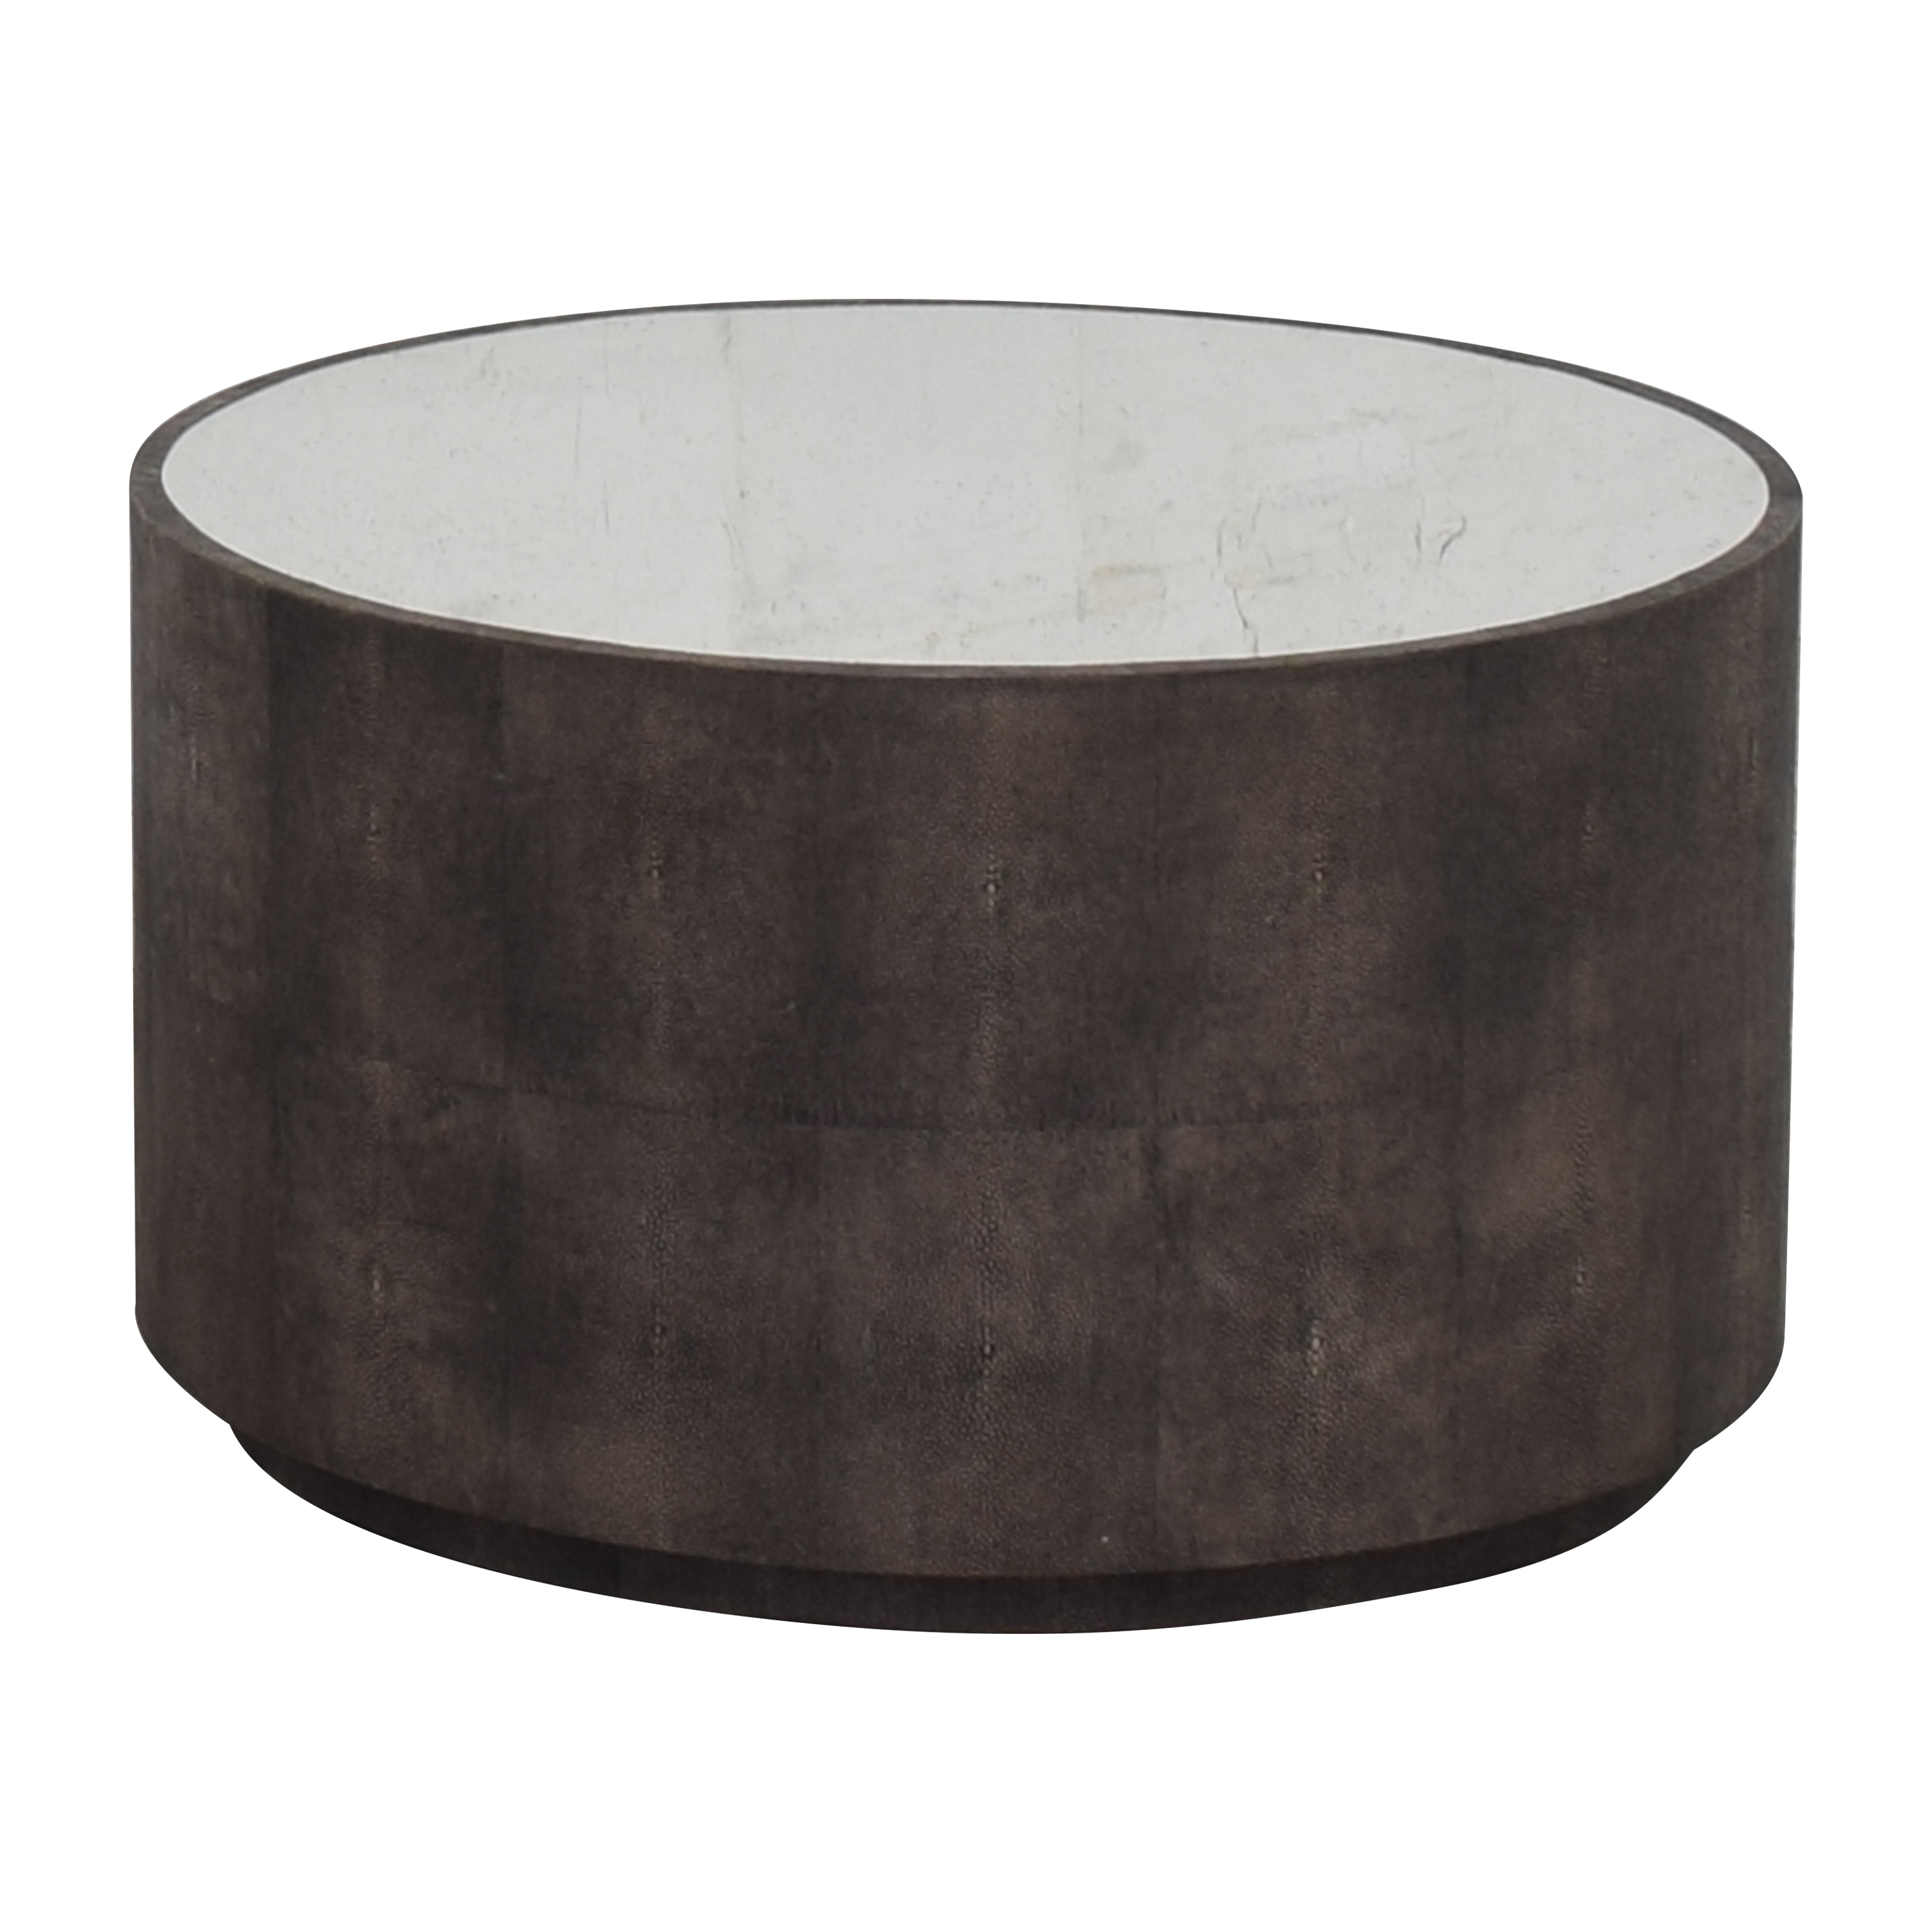 Mecox Gardens Round Coffee Table / Tables